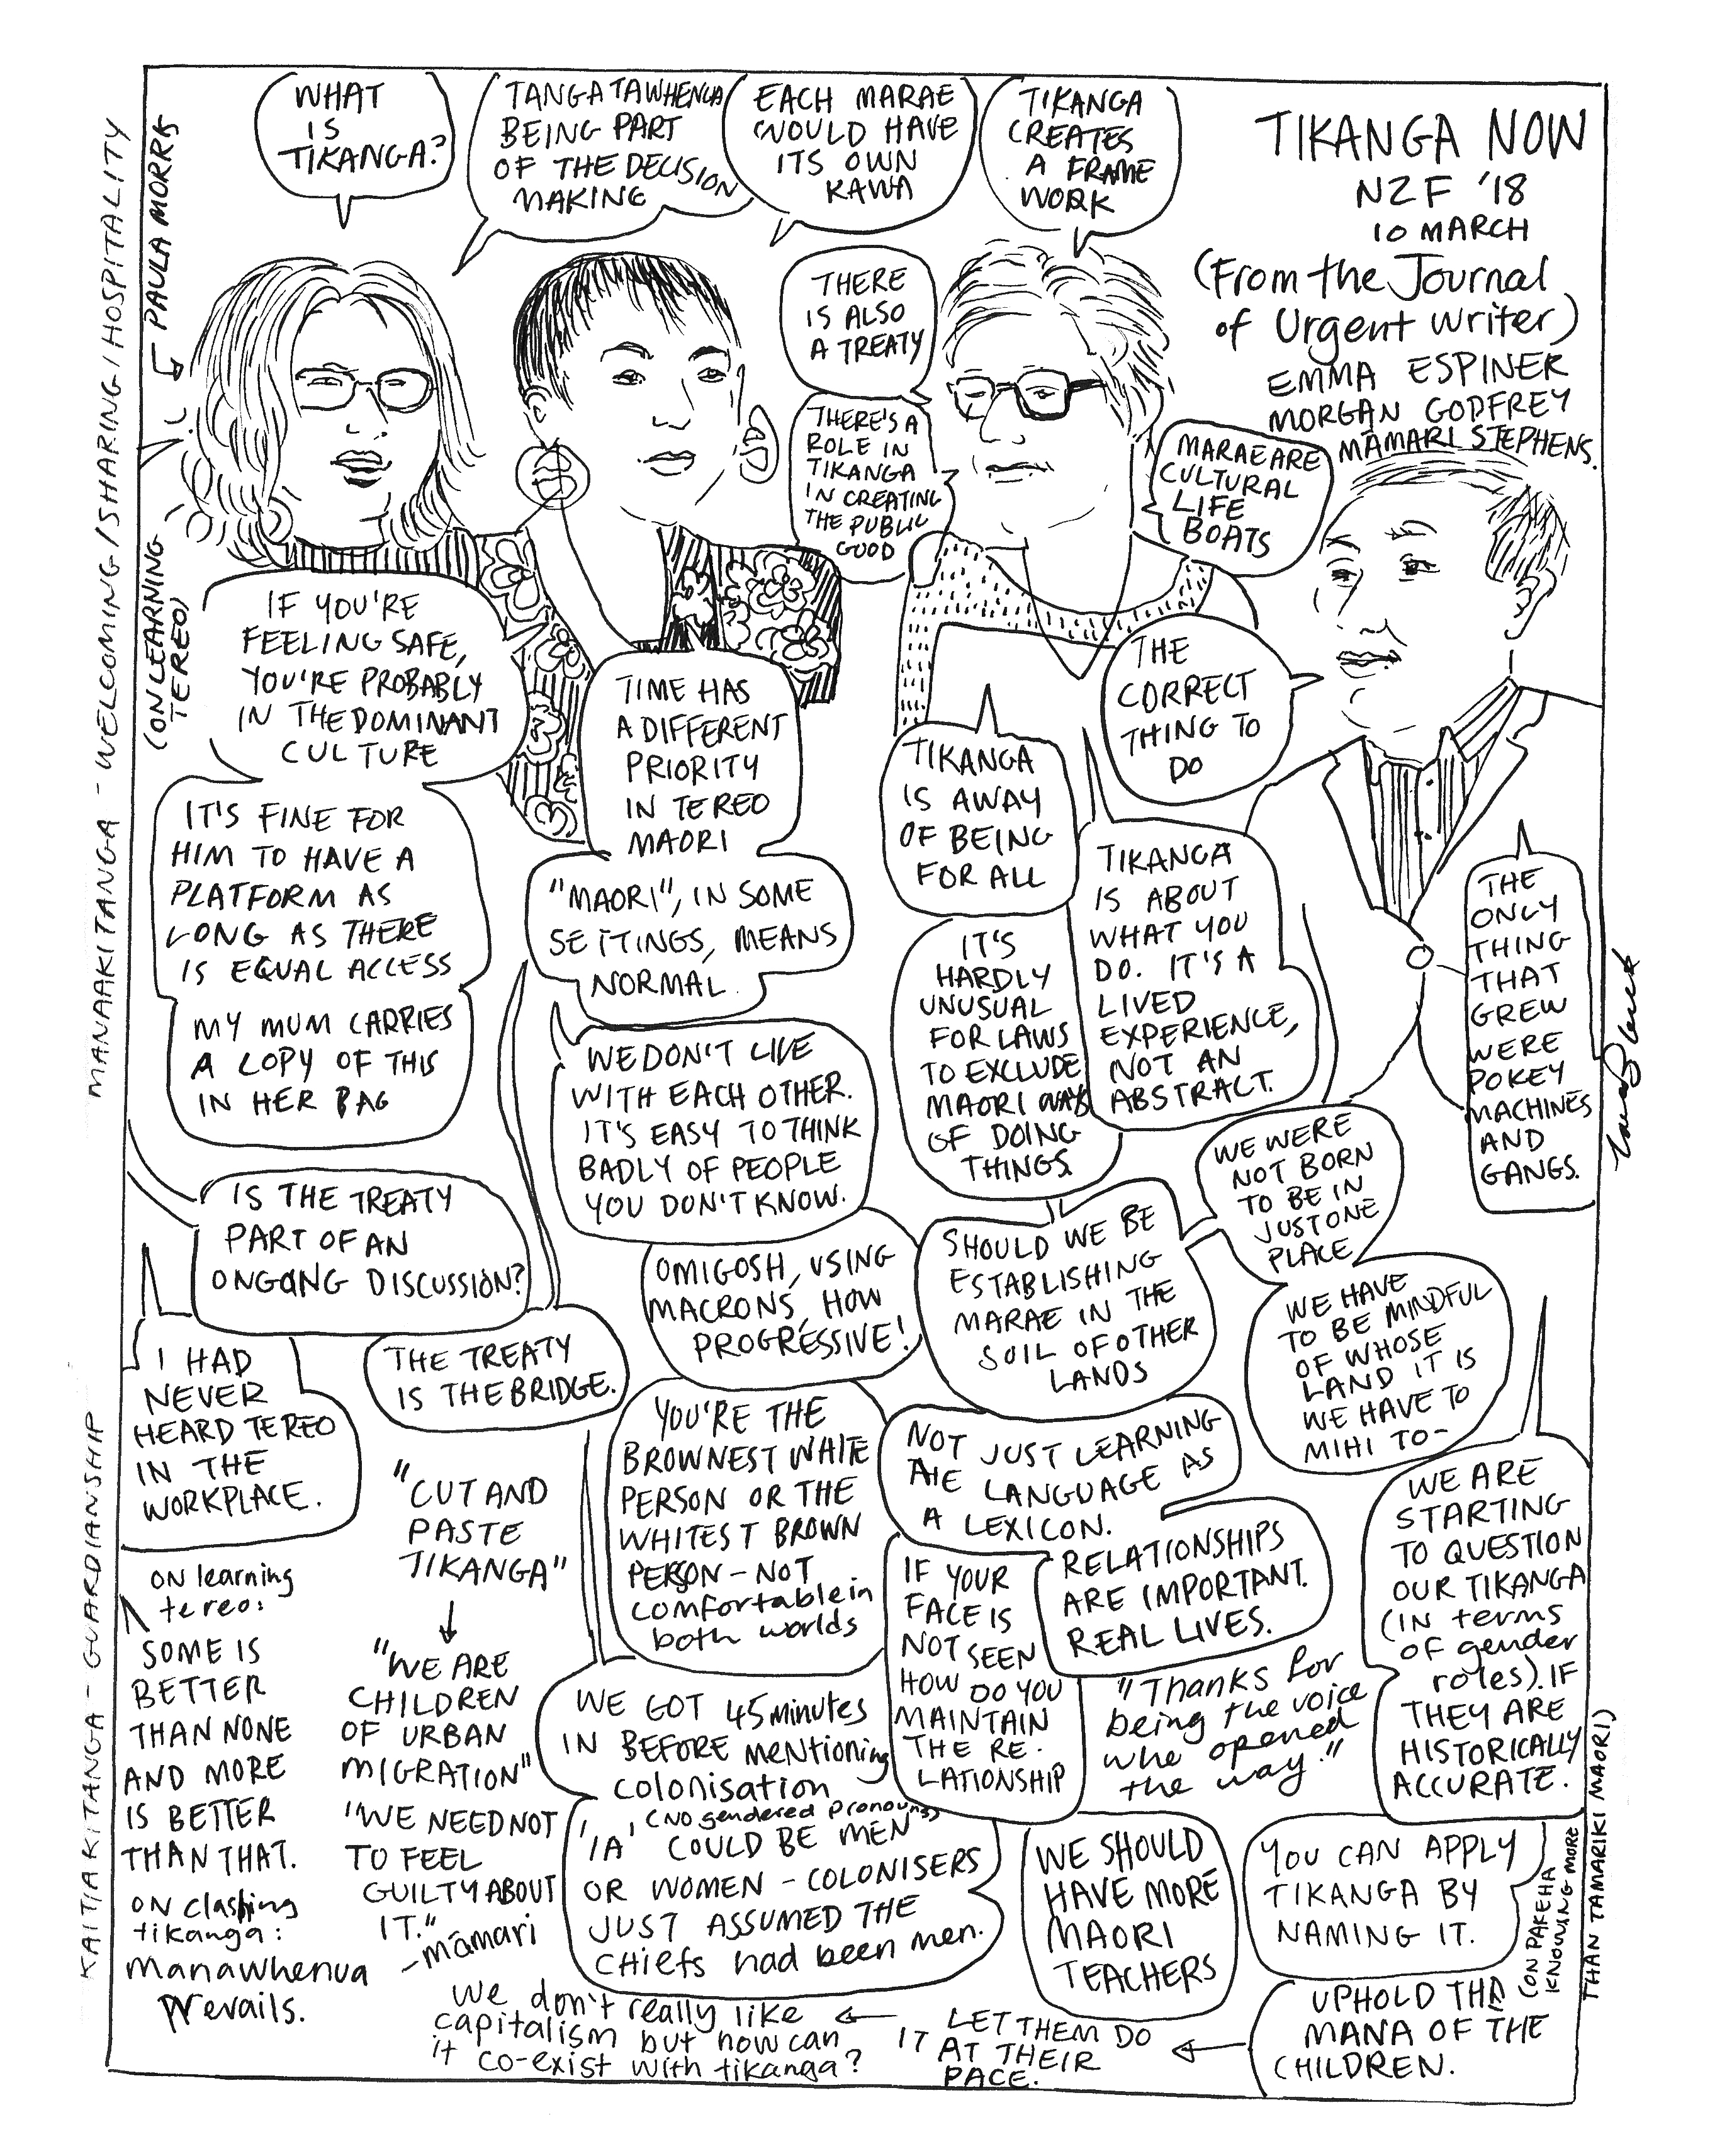 Drawing/comic of Emma Espiner, Morgan Godfrey and Mamari Stephens in discussion with Paula Morris at NZWF 2018.